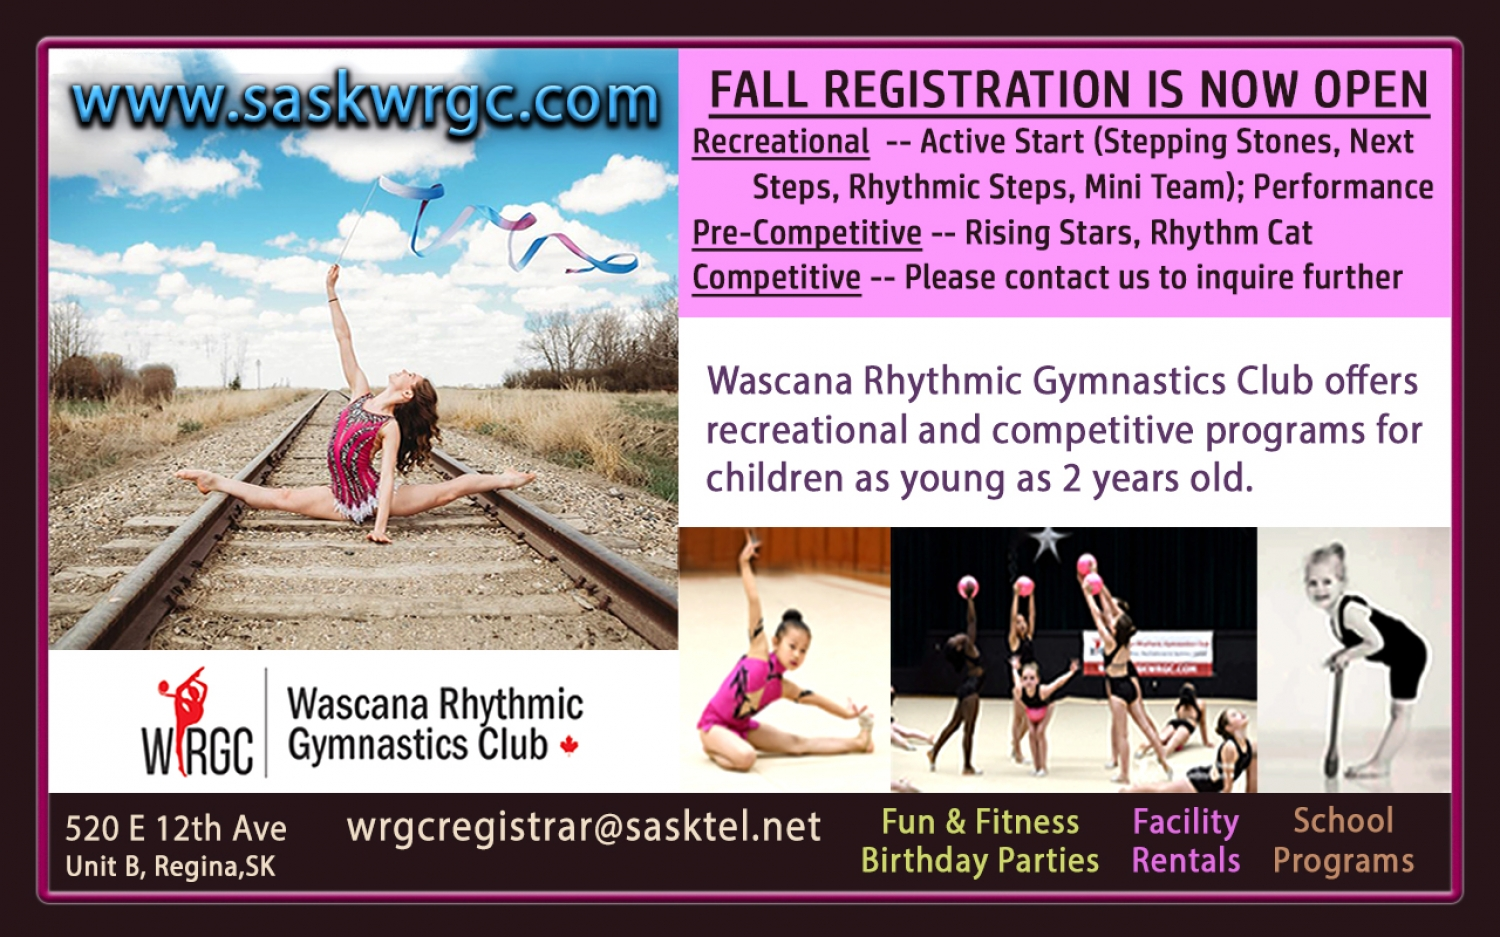 Look for our ad in the Leader Post's Fall Activity Guide